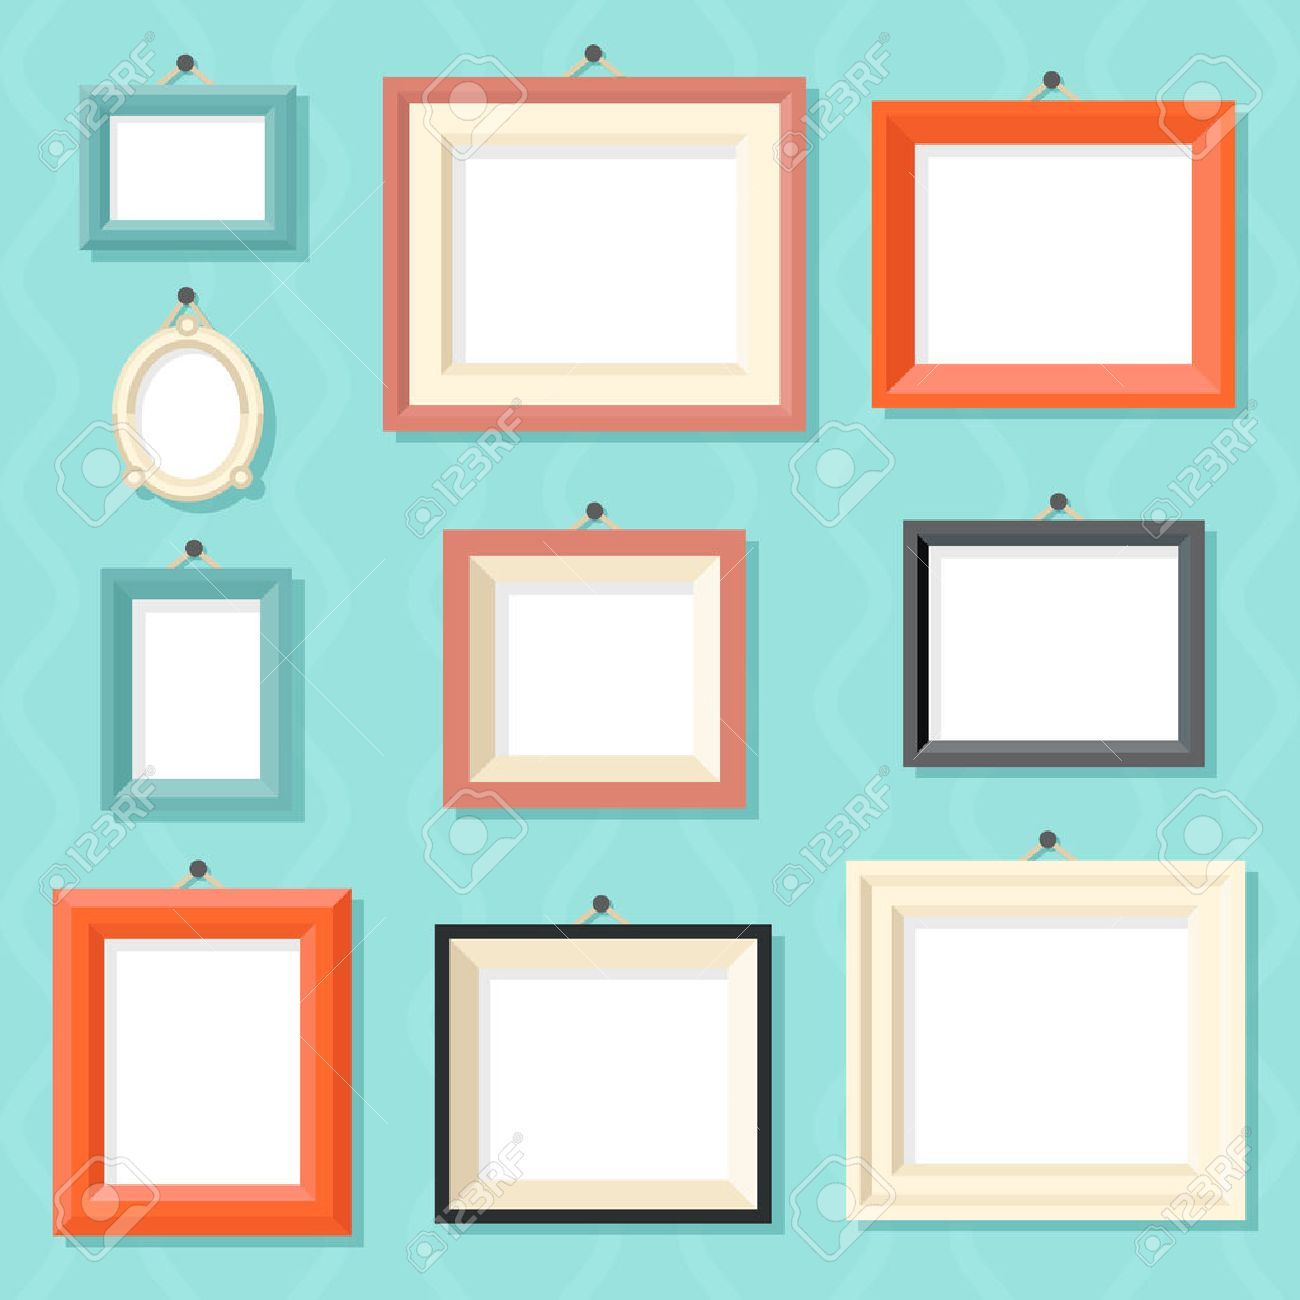 Vintage Cartoon Photo Picture Painting Drawing Frame Template